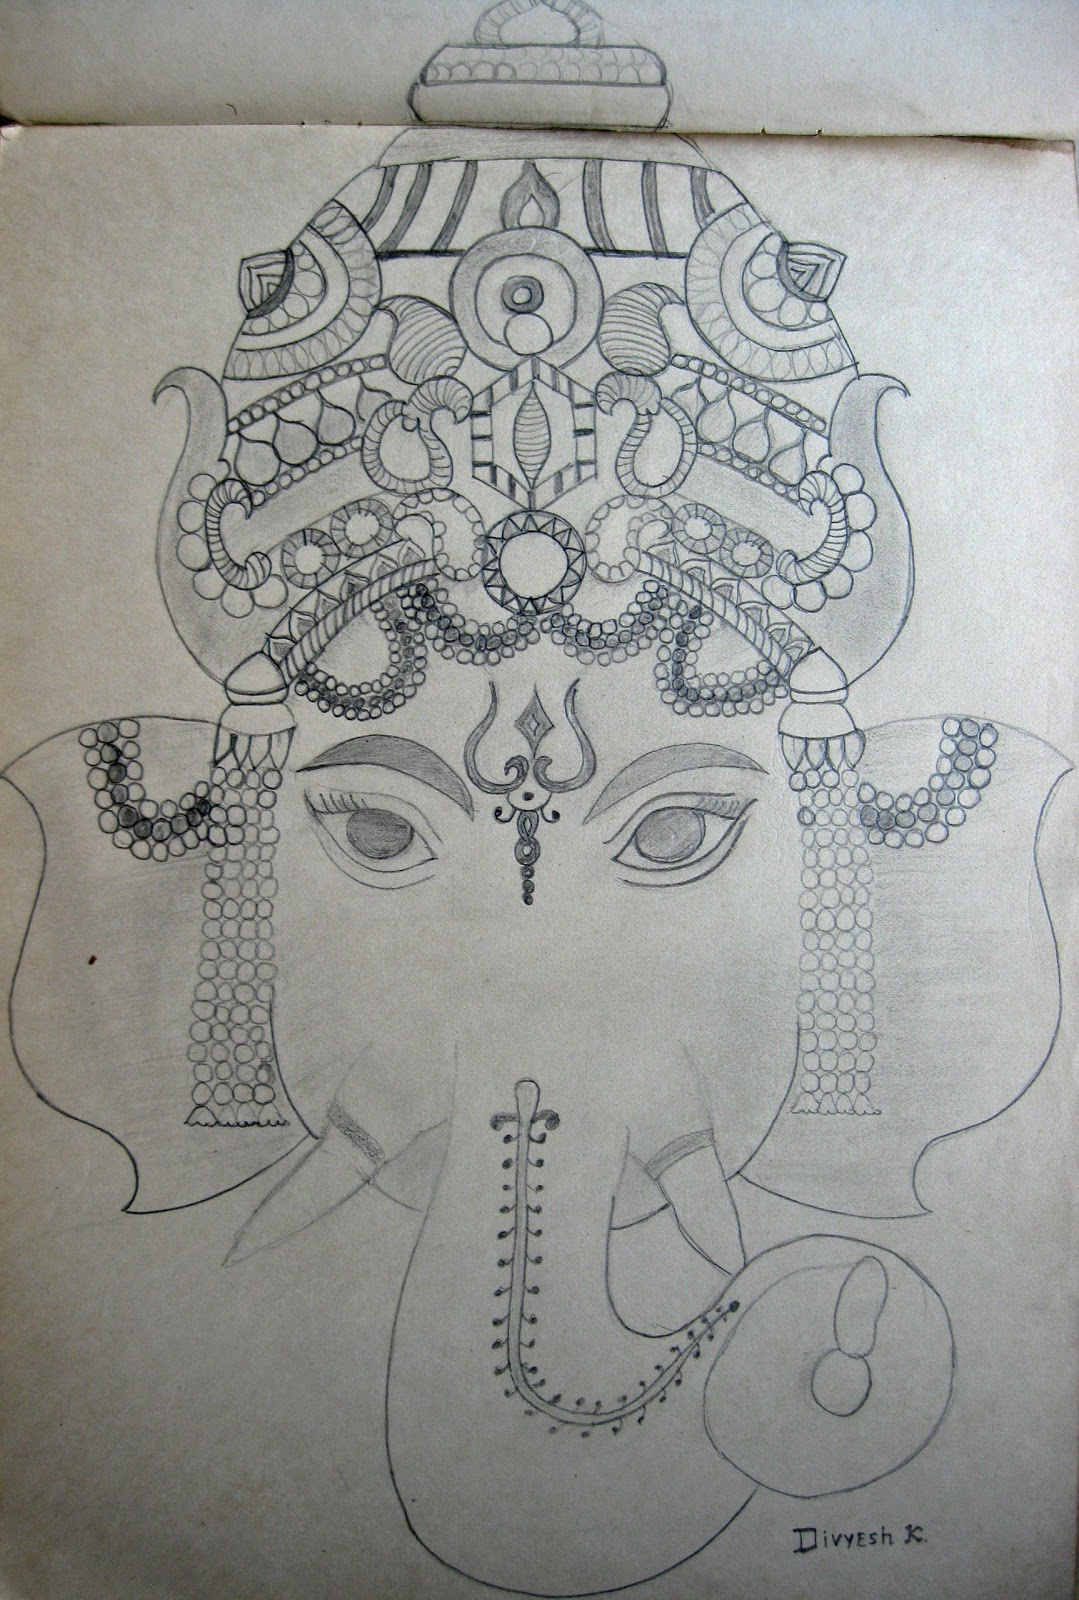 Lord ganesha sketch by divyesh lappawala